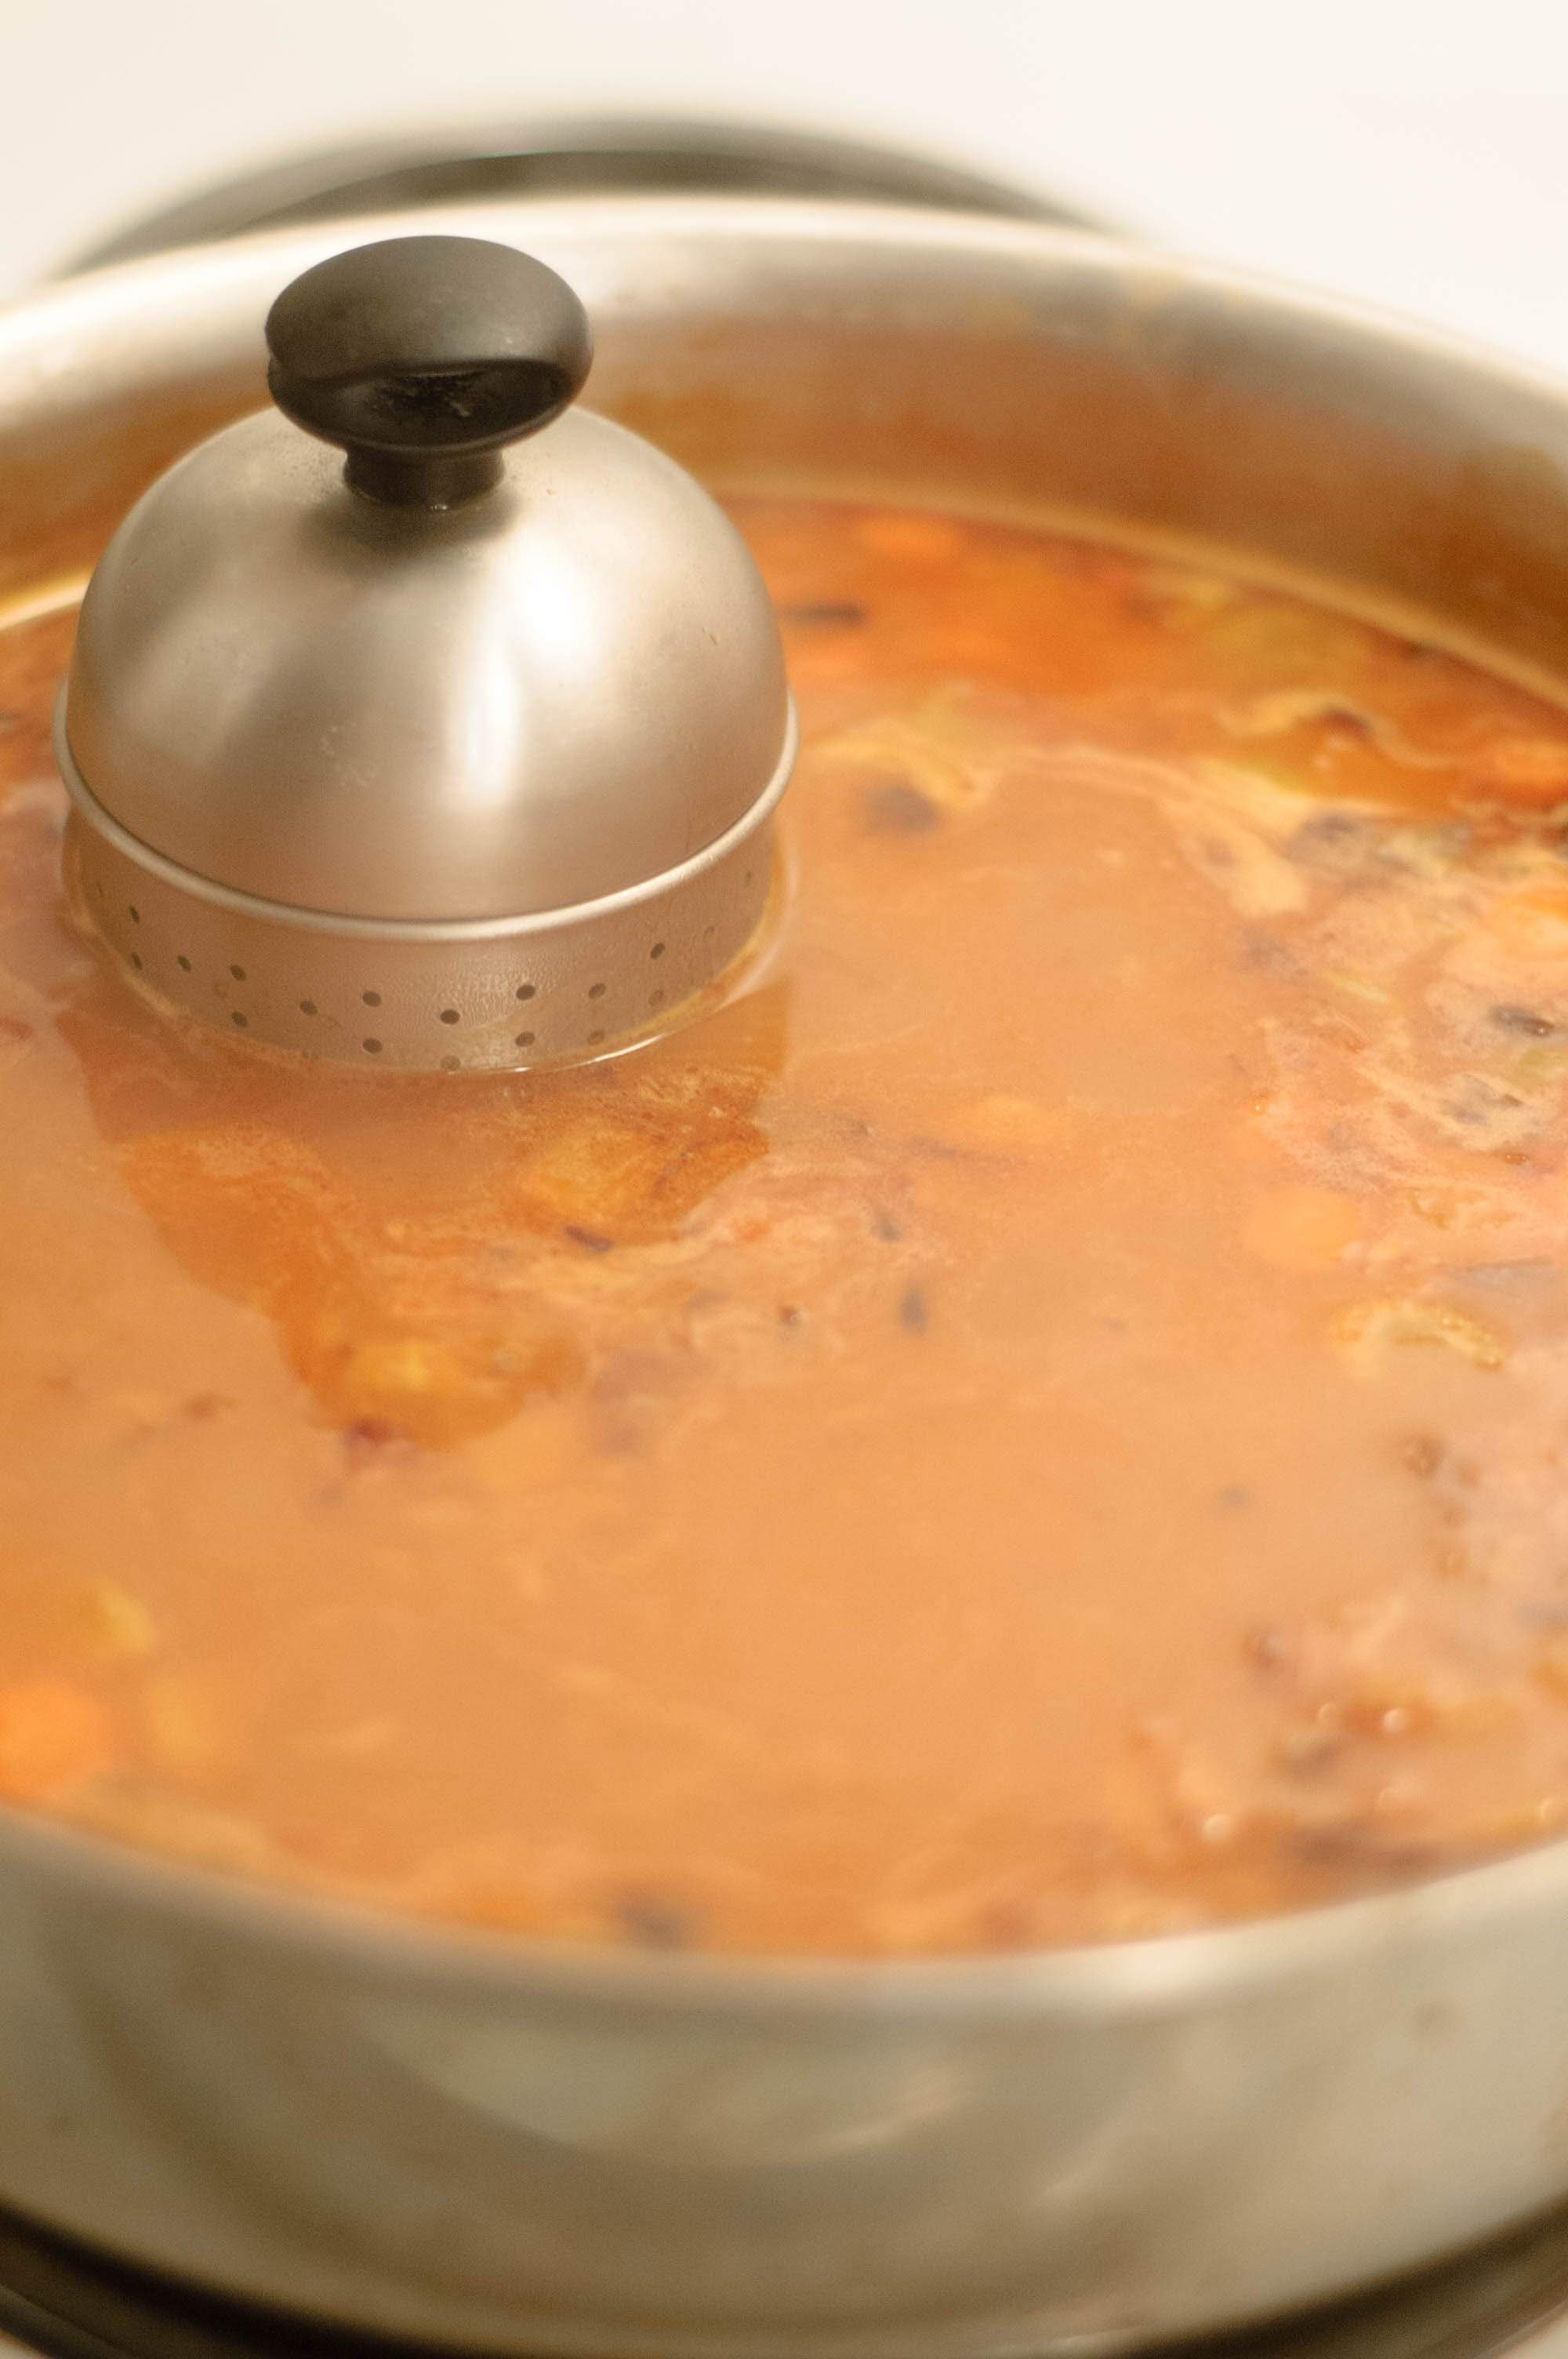 A spice strainer in a simmering sauce pan of espagnole sauce